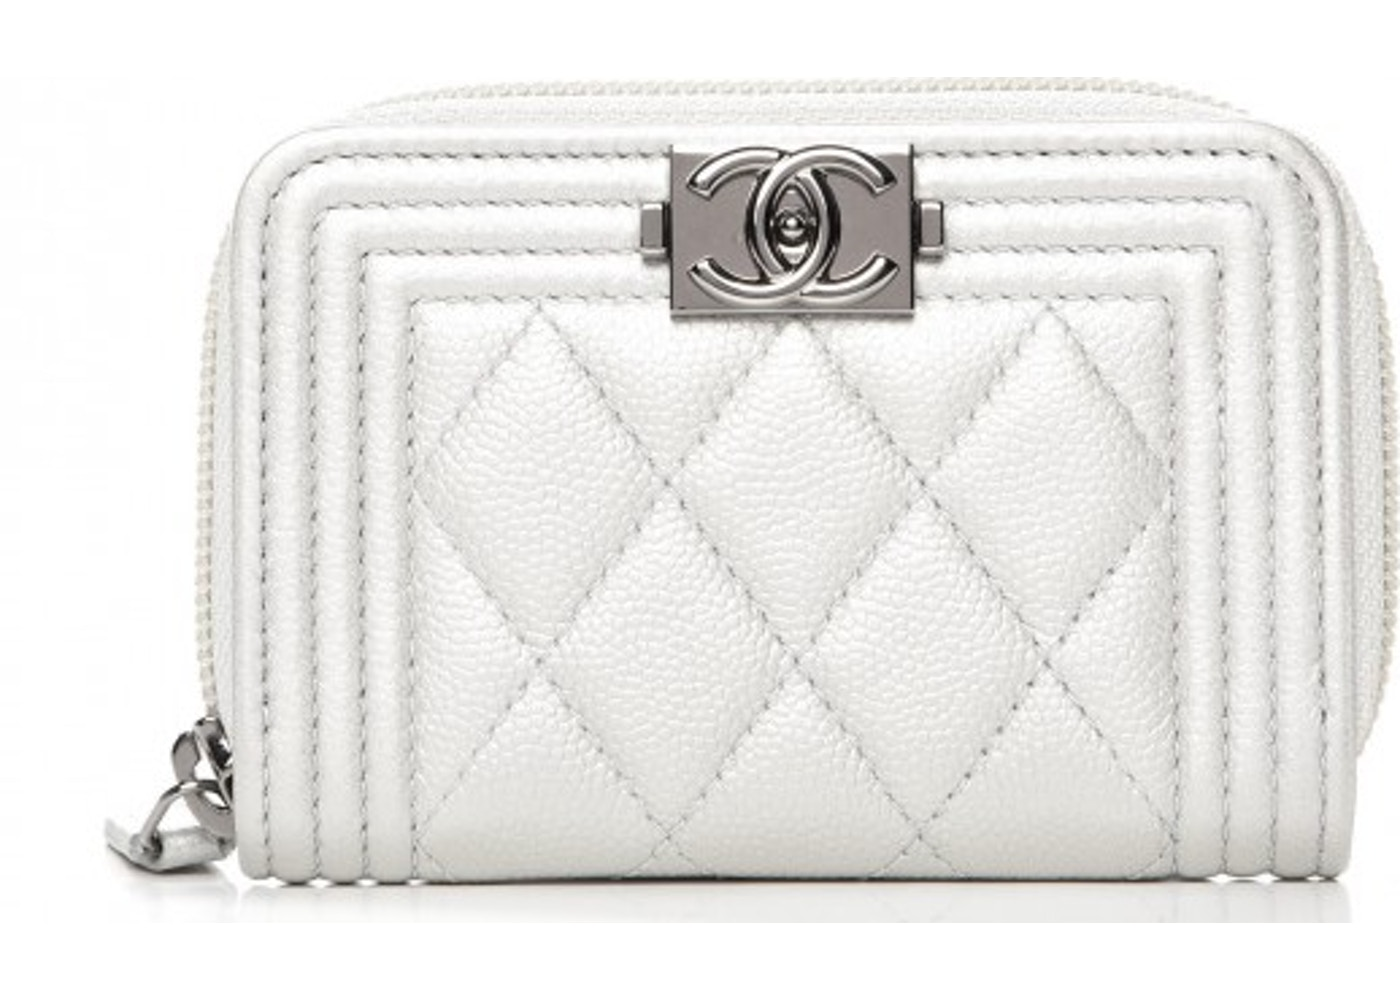 35a05a1bf07b Chanel Boy Zip Around Coin Purse Wallet Quilted Diamond White